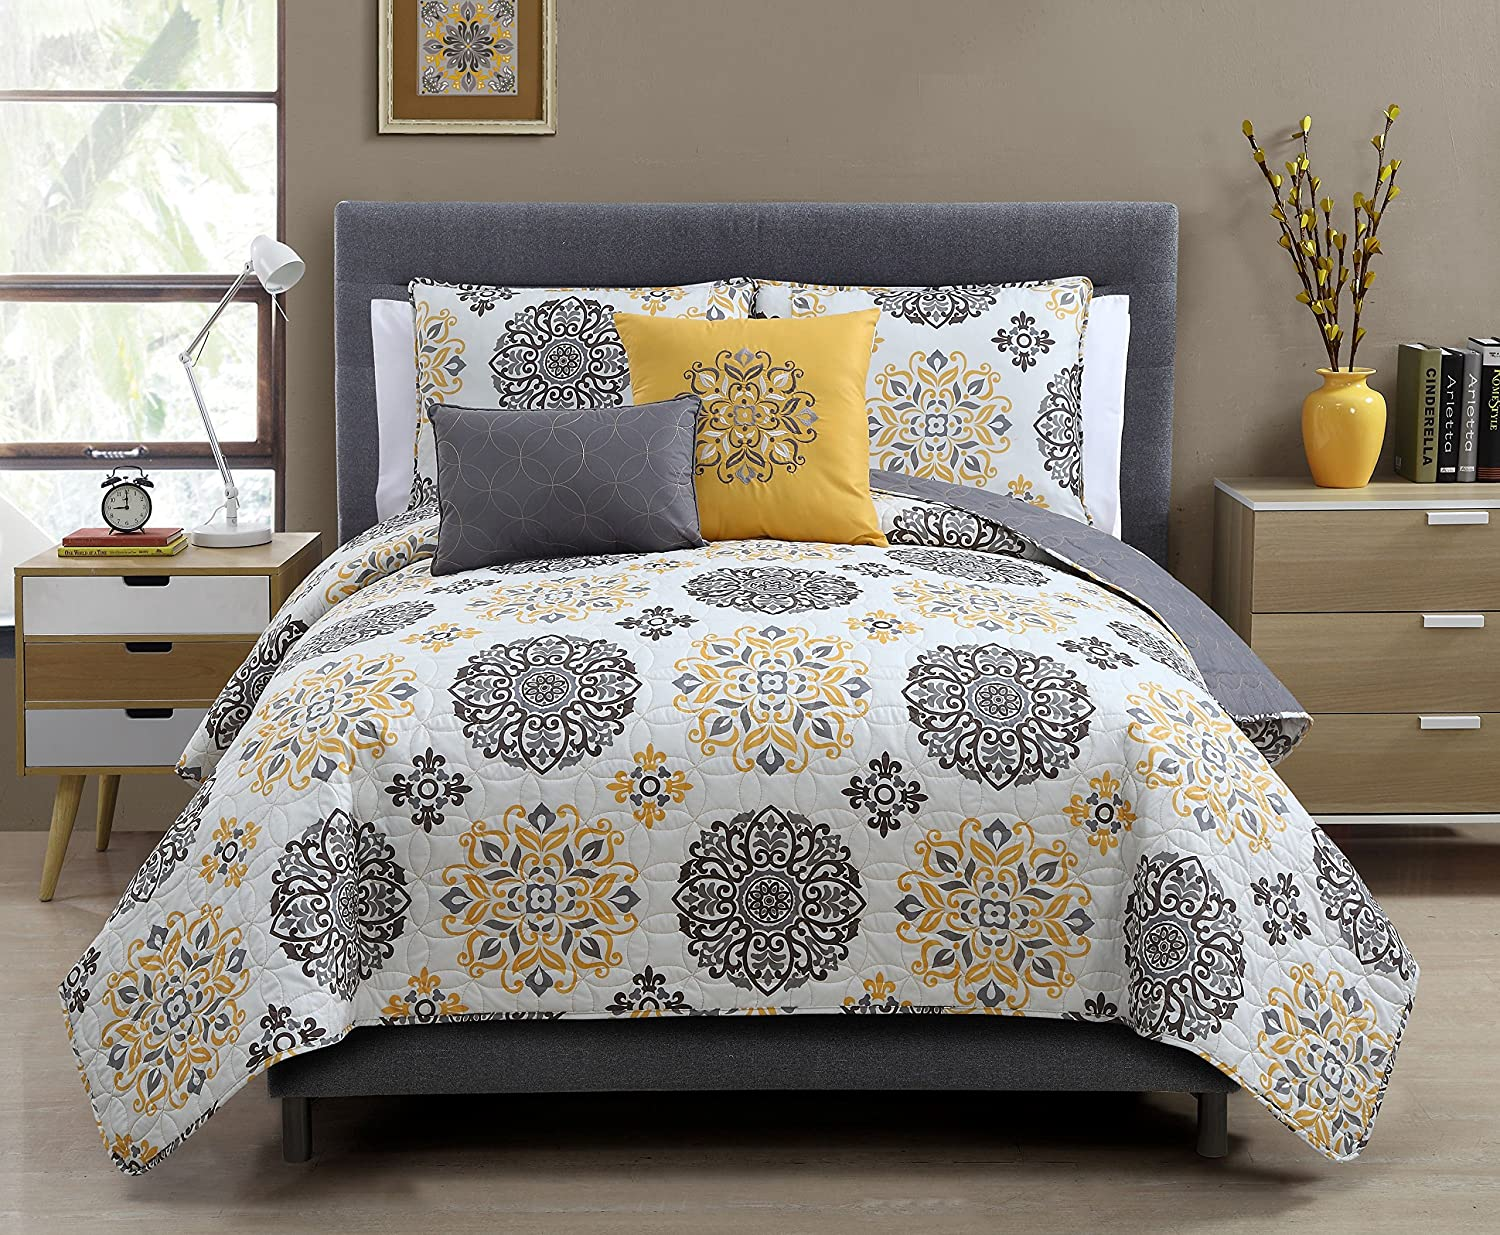 Amazon.com: Hayden Reversible Decorative 5-piece Quilt Set, Gray ... : queen size quilts - Adamdwight.com